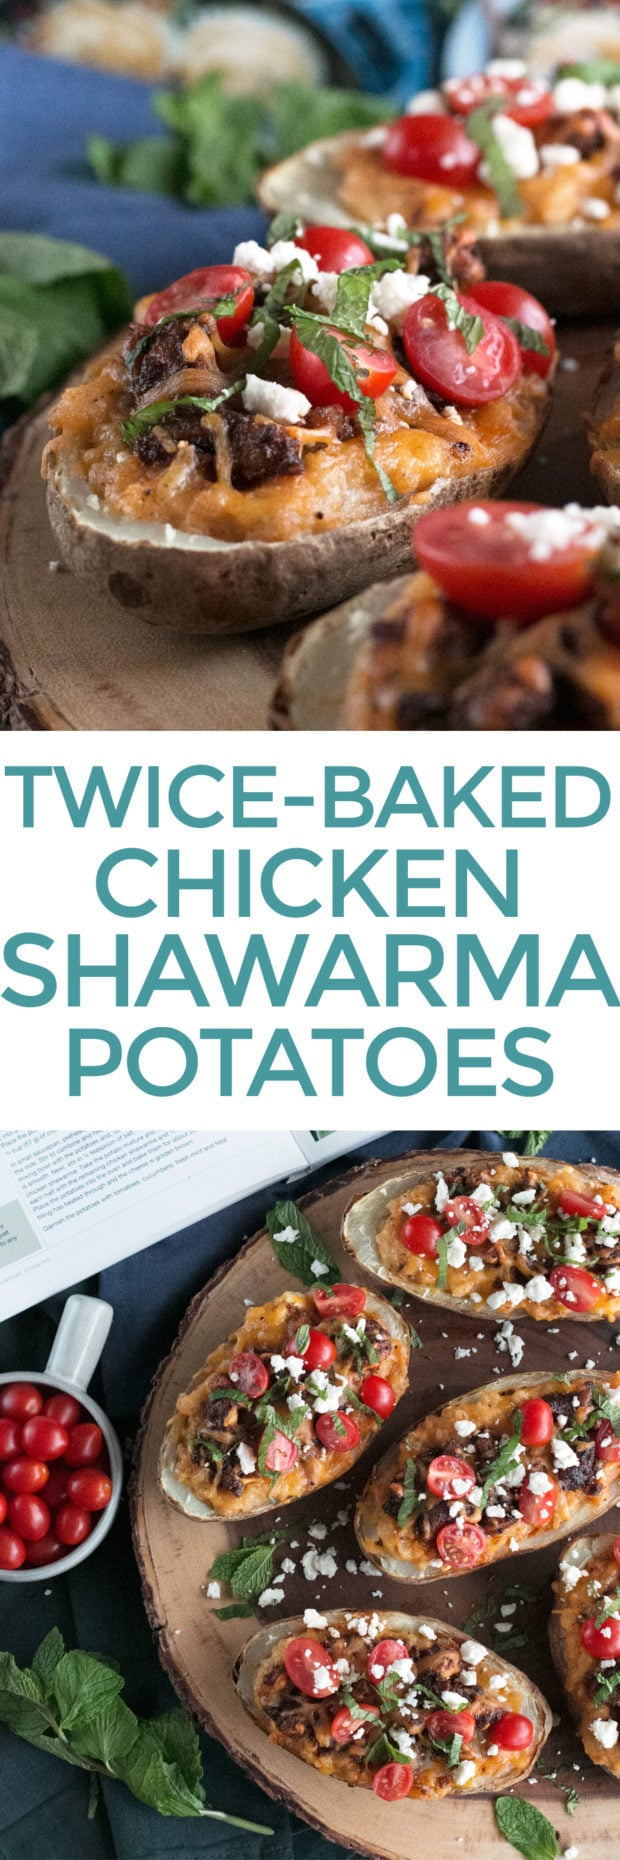 Twice-Baked Chicken Shawarma Stuffed Potatoes | cakenknife.com #moderncomfortcooking @griermountain #dinner #yummy